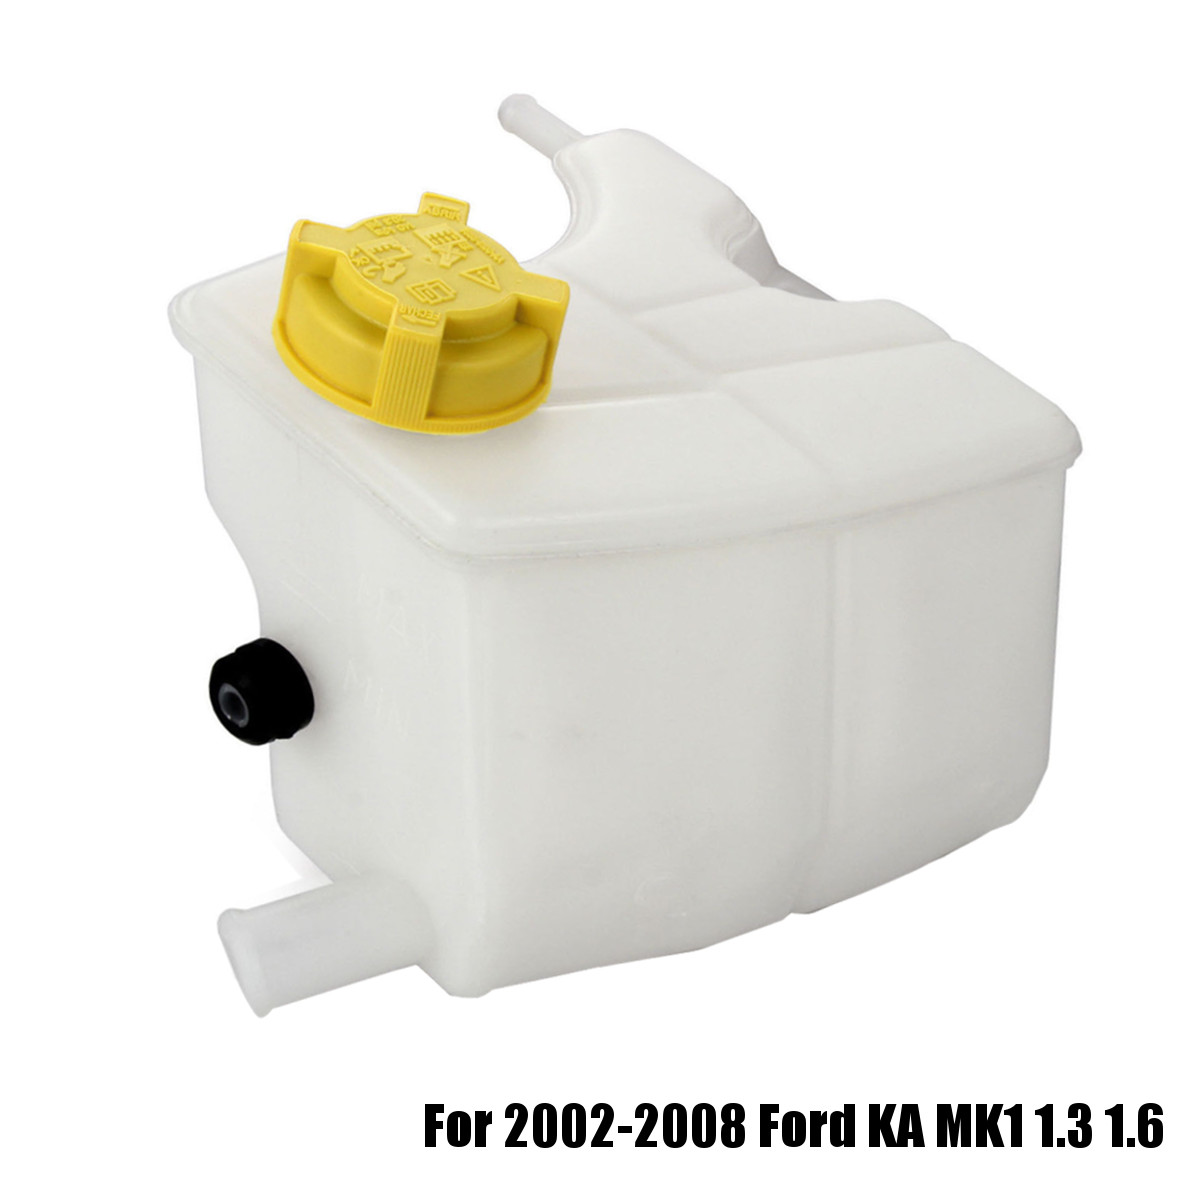 Radiator Expansion Coolant Heater Tank Bottle W/cap 1134883 1s51 8k218a For Ford Ka Mk1 1.3 1.6 2002-2008 Neither Too Hard Nor Too Soft Automobiles & Motorcycles